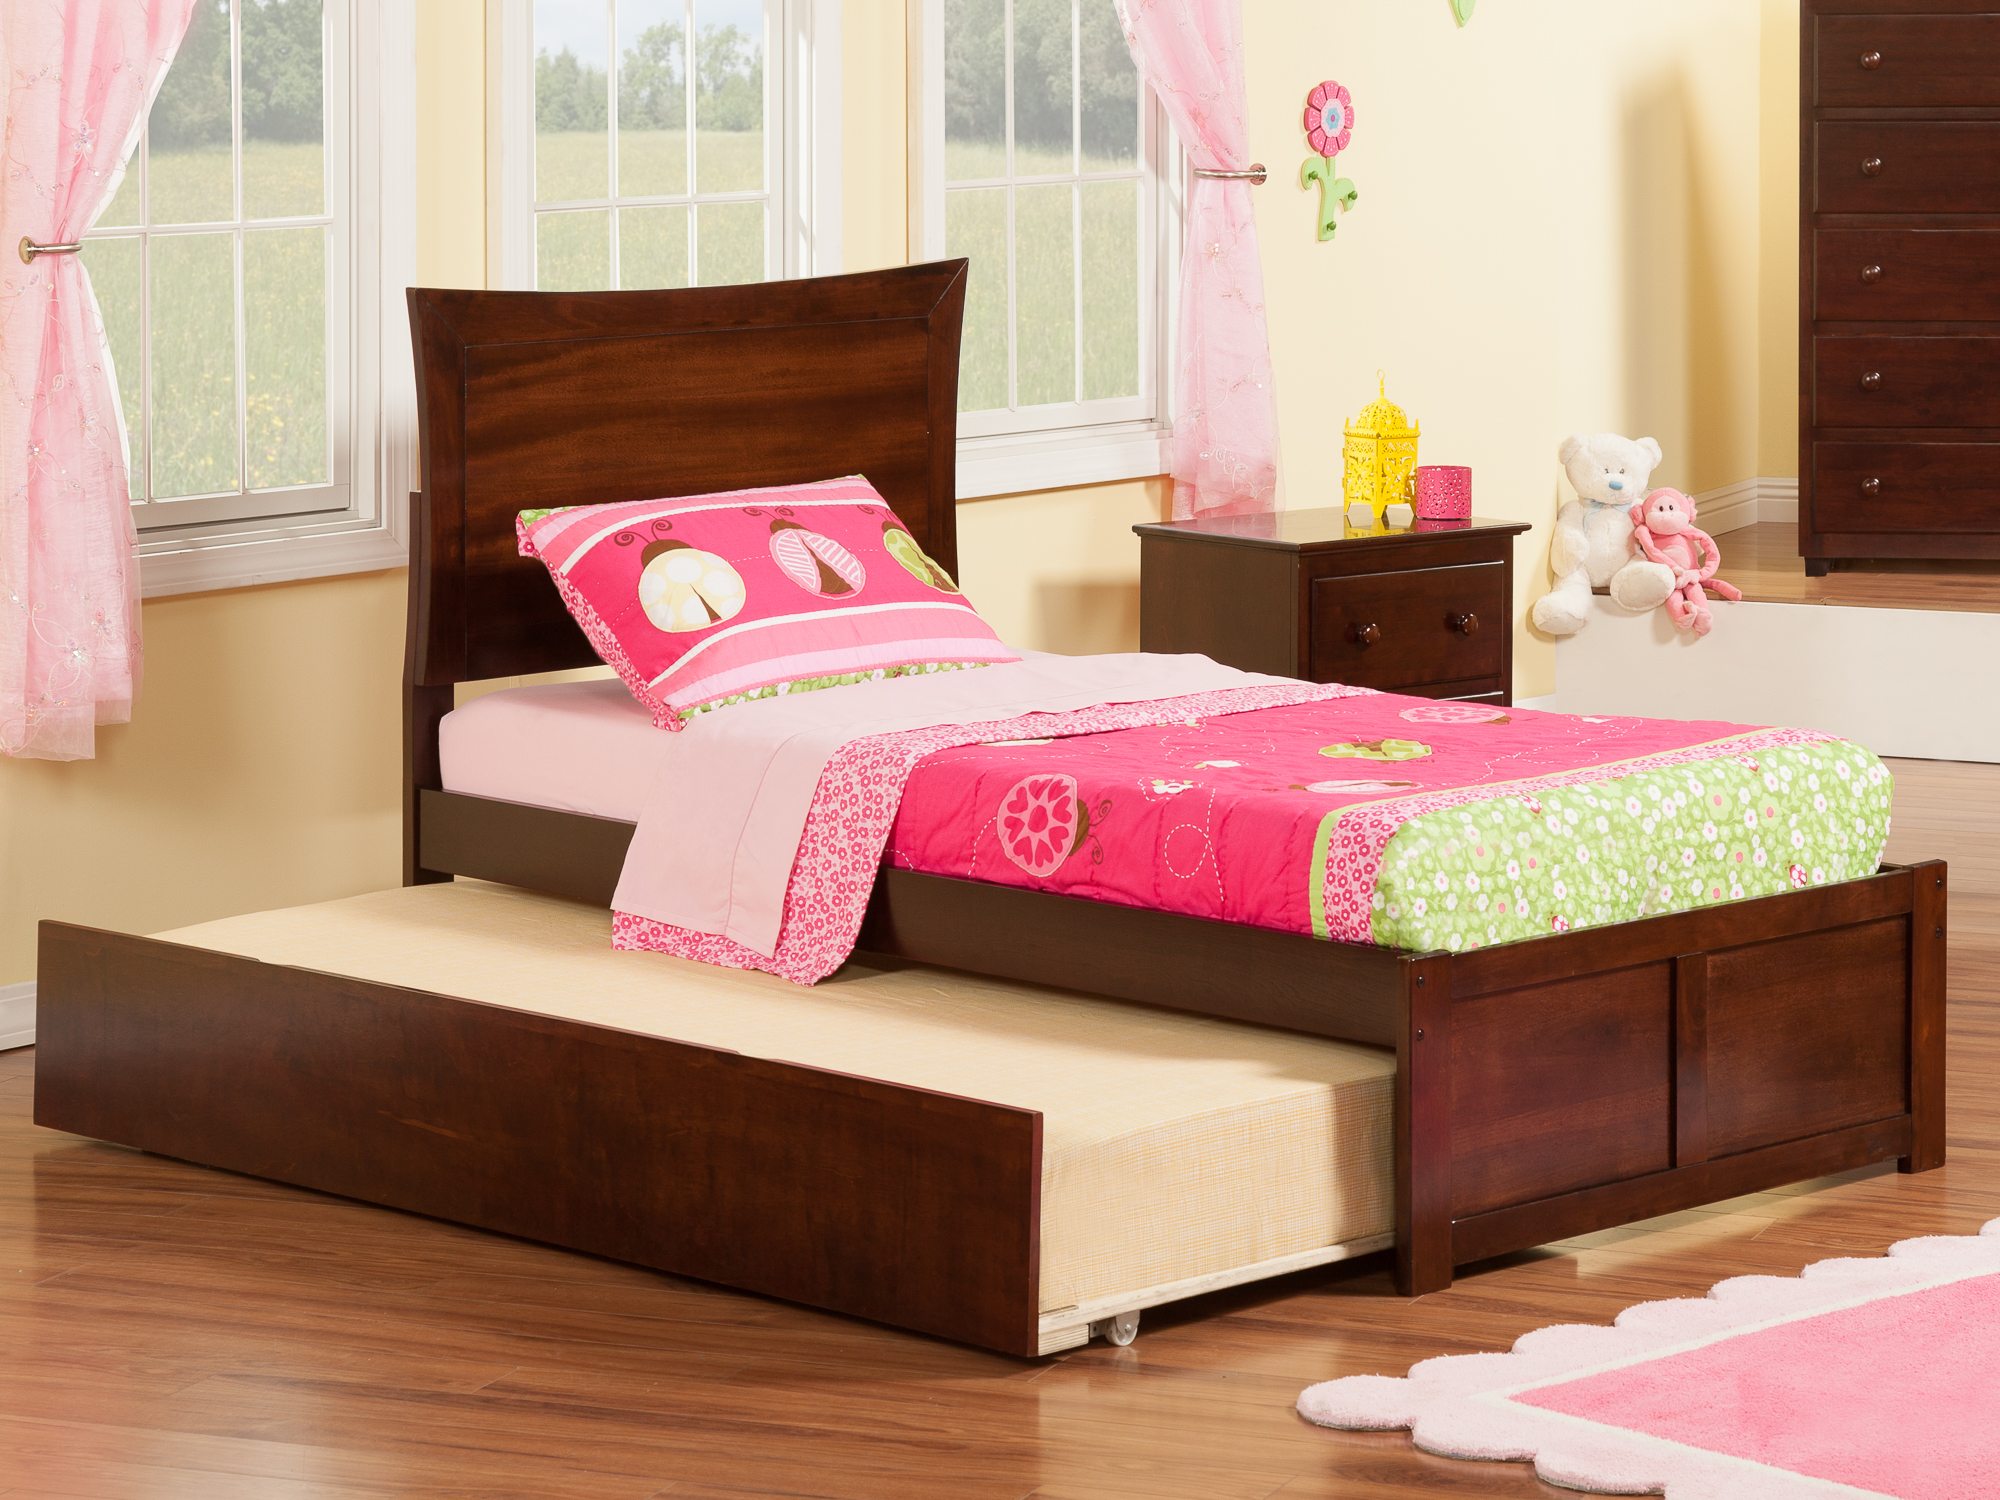 Metro Twin Platform Bed with Flat Panel Foot Board and Twin Size Urban Trundle Bed in Walnut by Atlantic Furniture